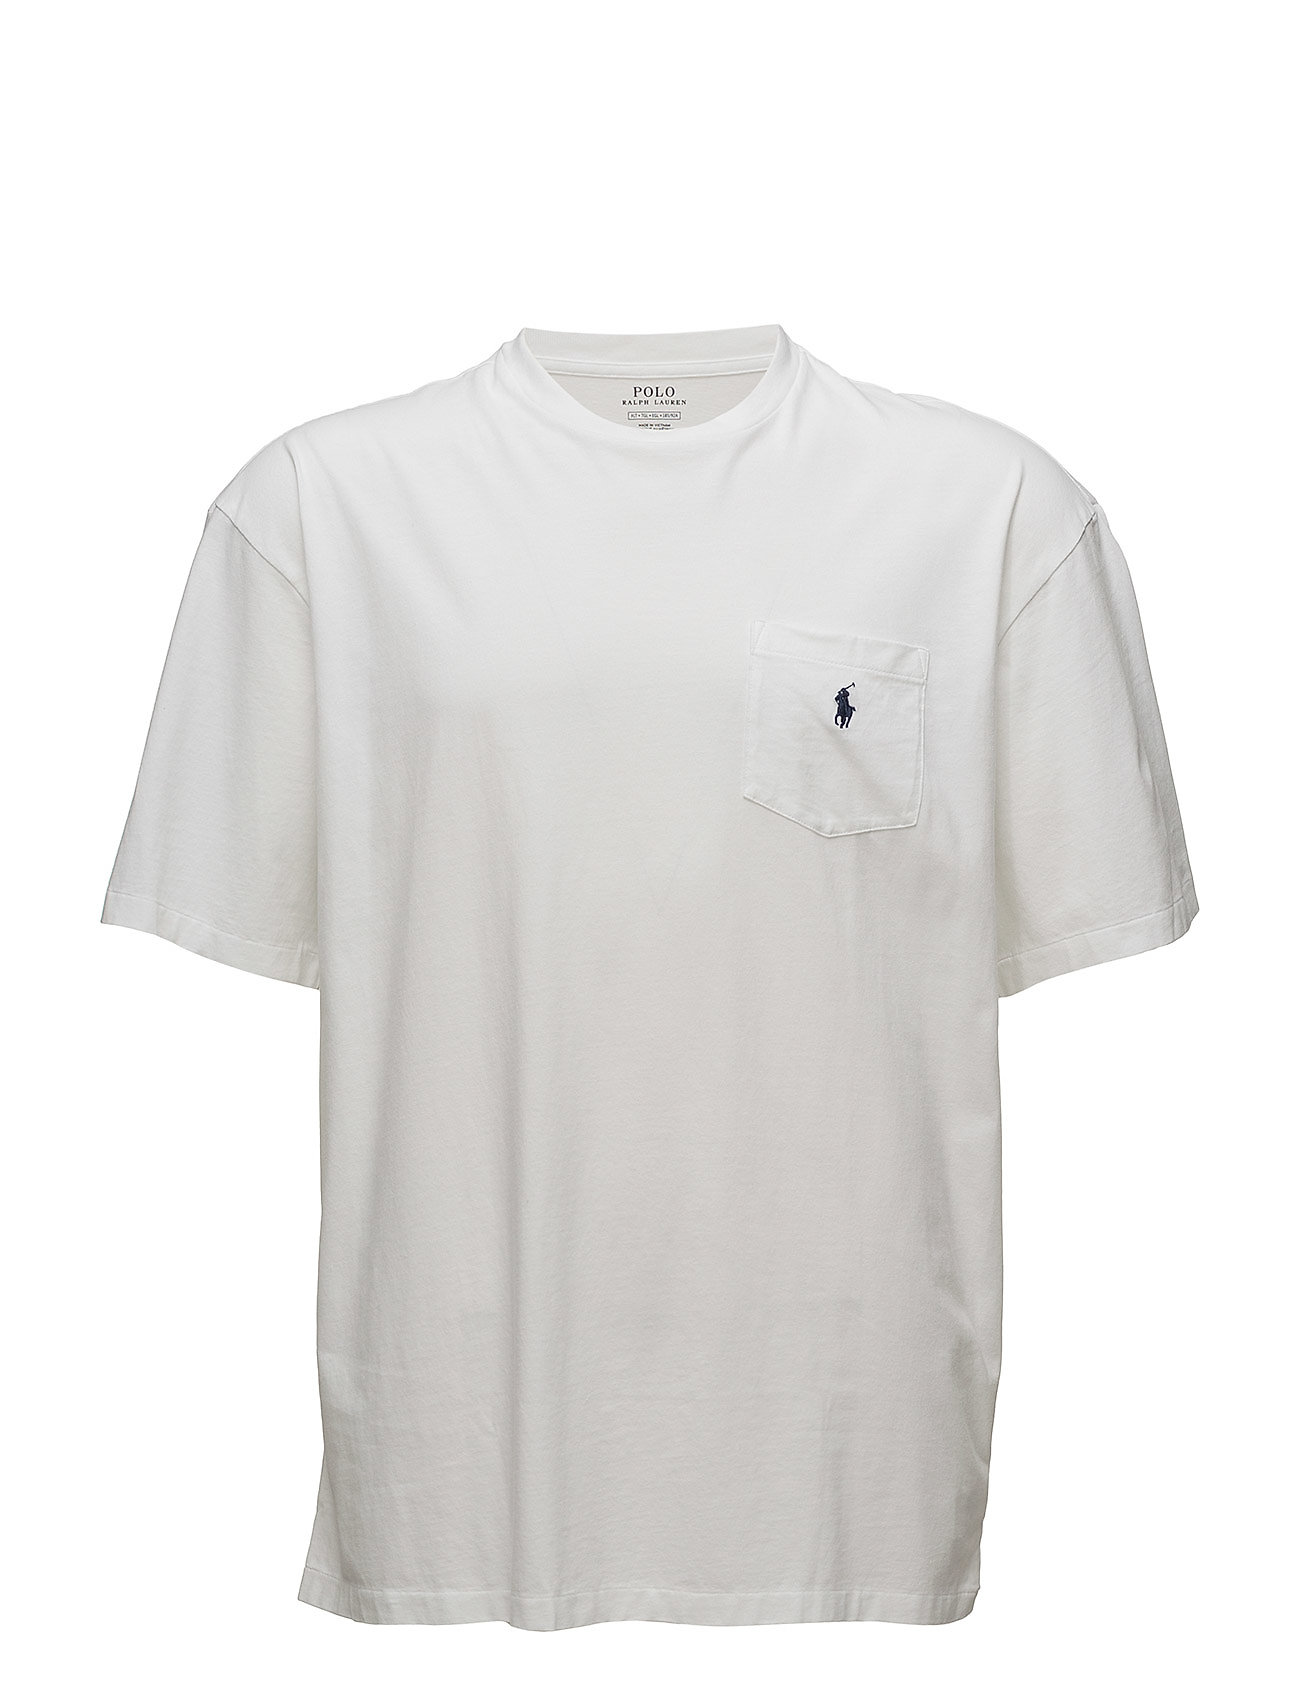 Polo Ralph Lauren Big & Tall Classic Fit Pocket T-Shirt - WHITE